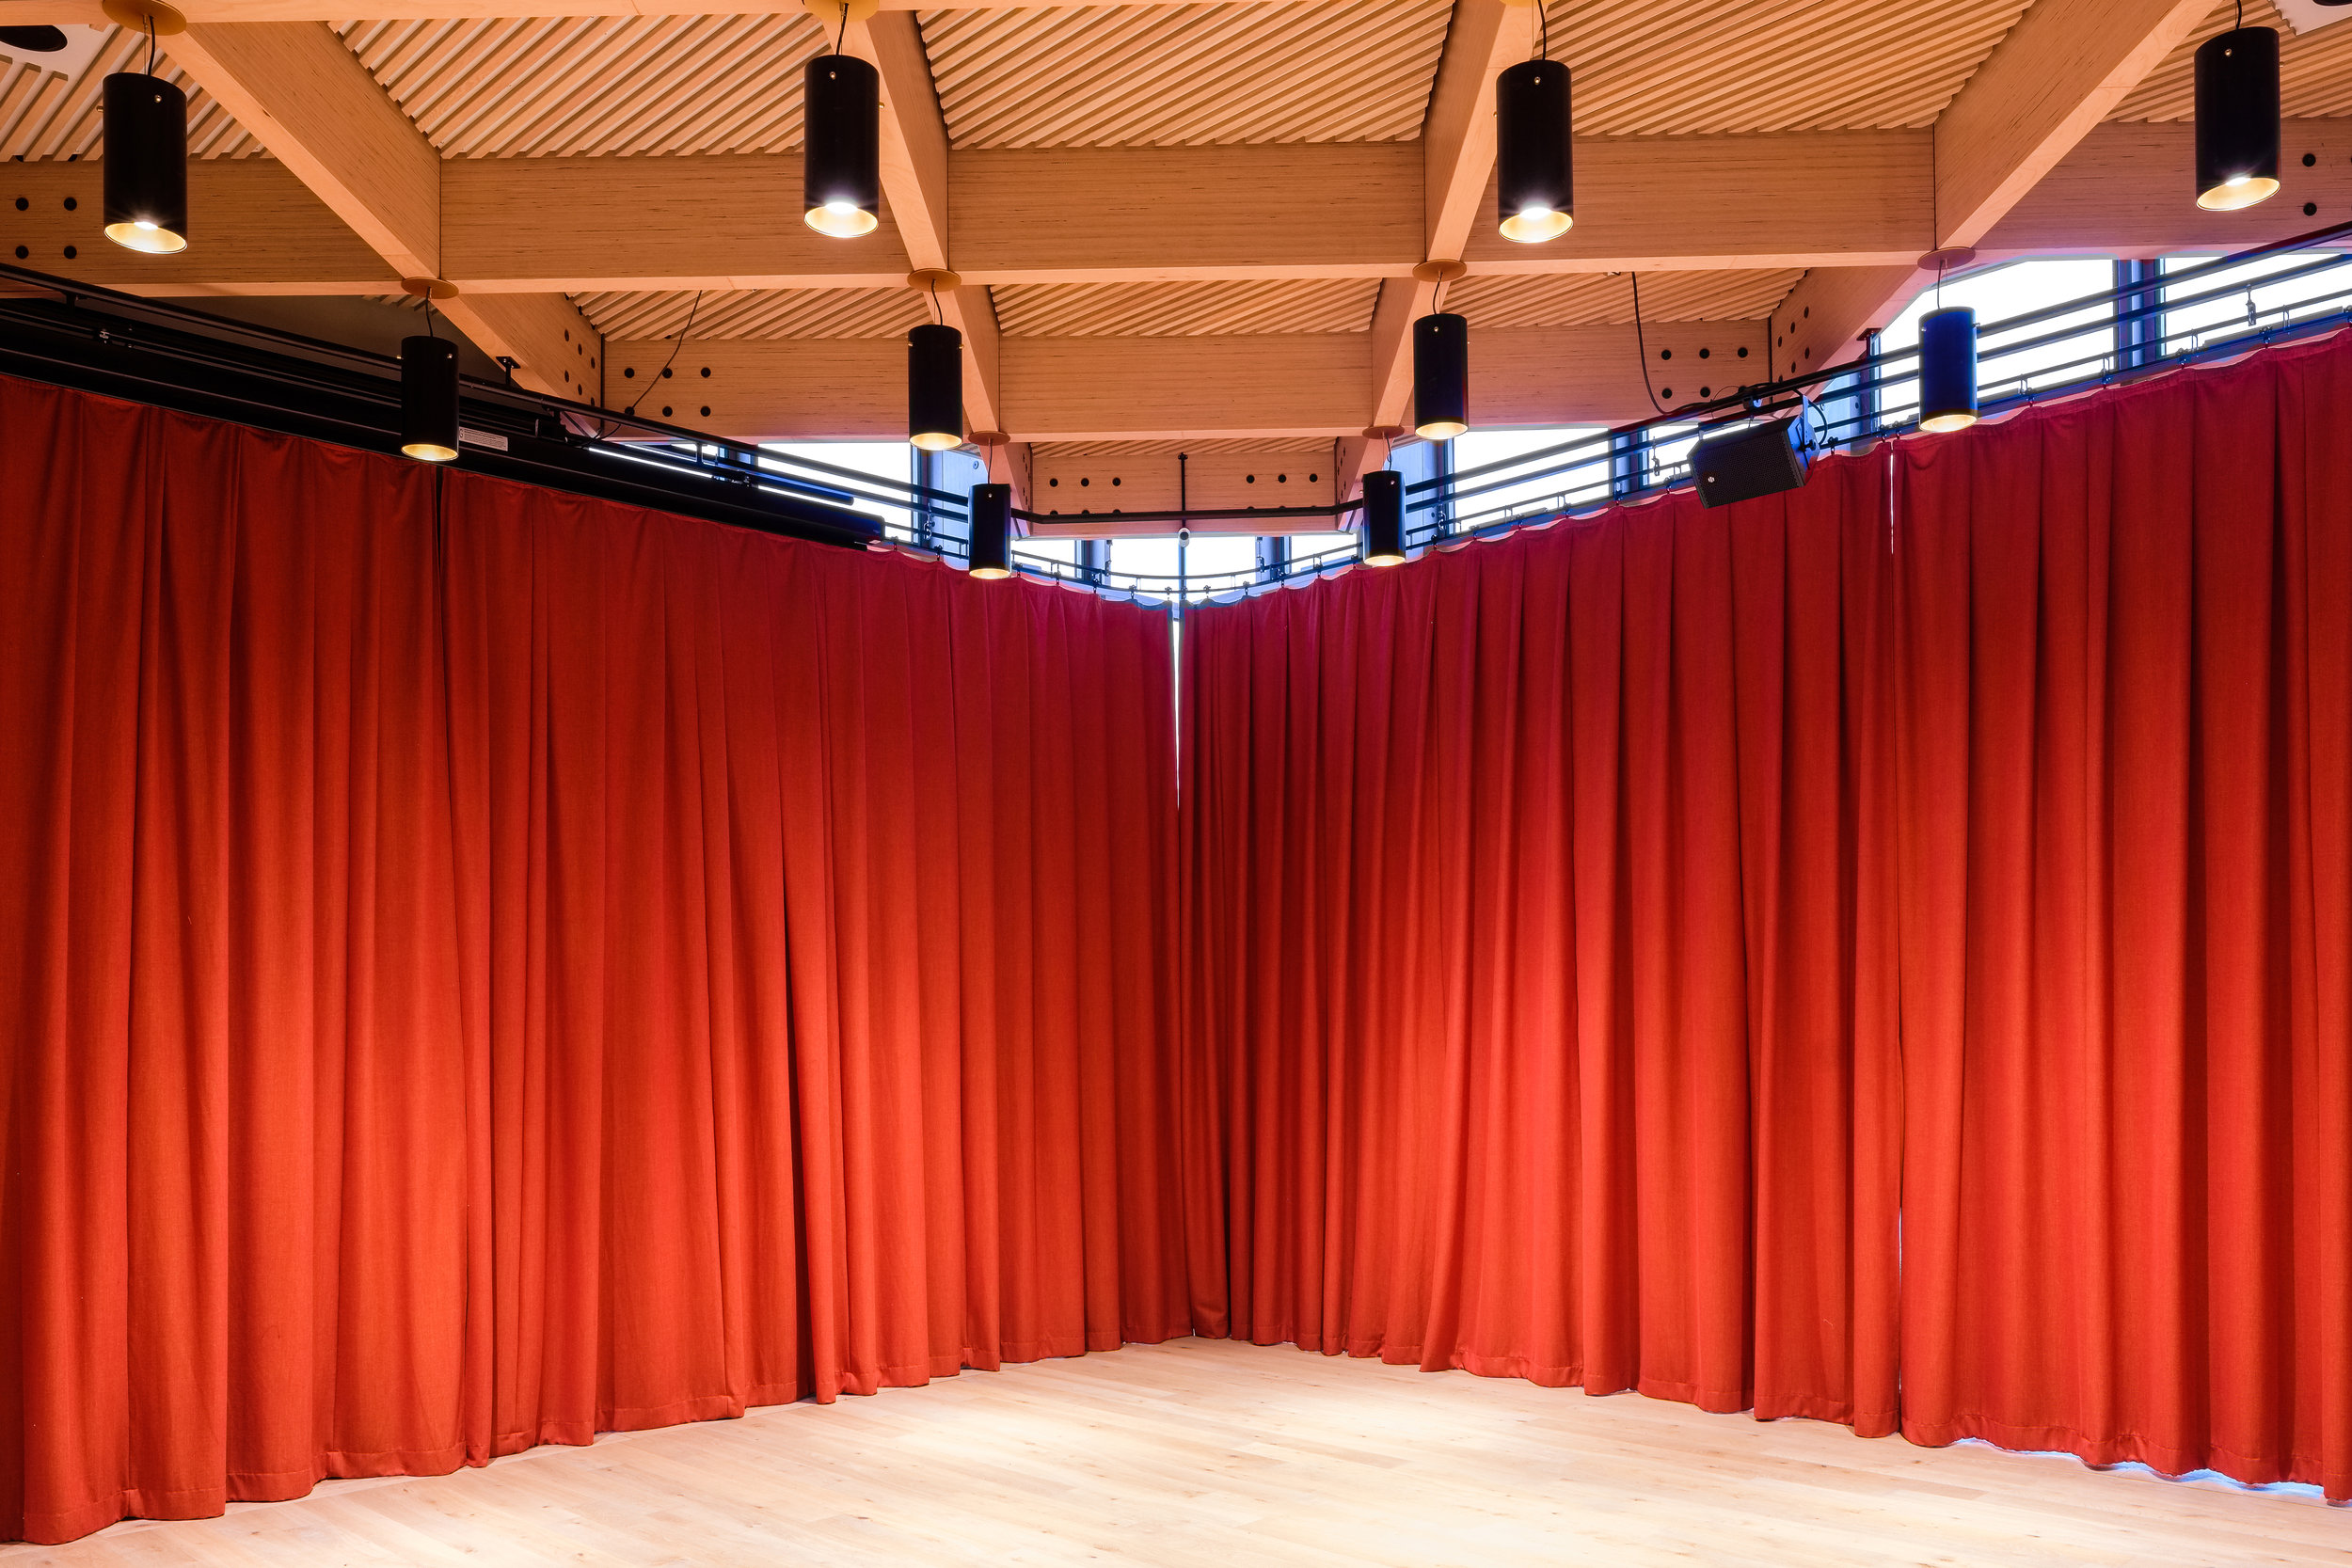 Fred+Howarth+Photography_Perse+Schol+Performing+Arts+Centre_17.jpg